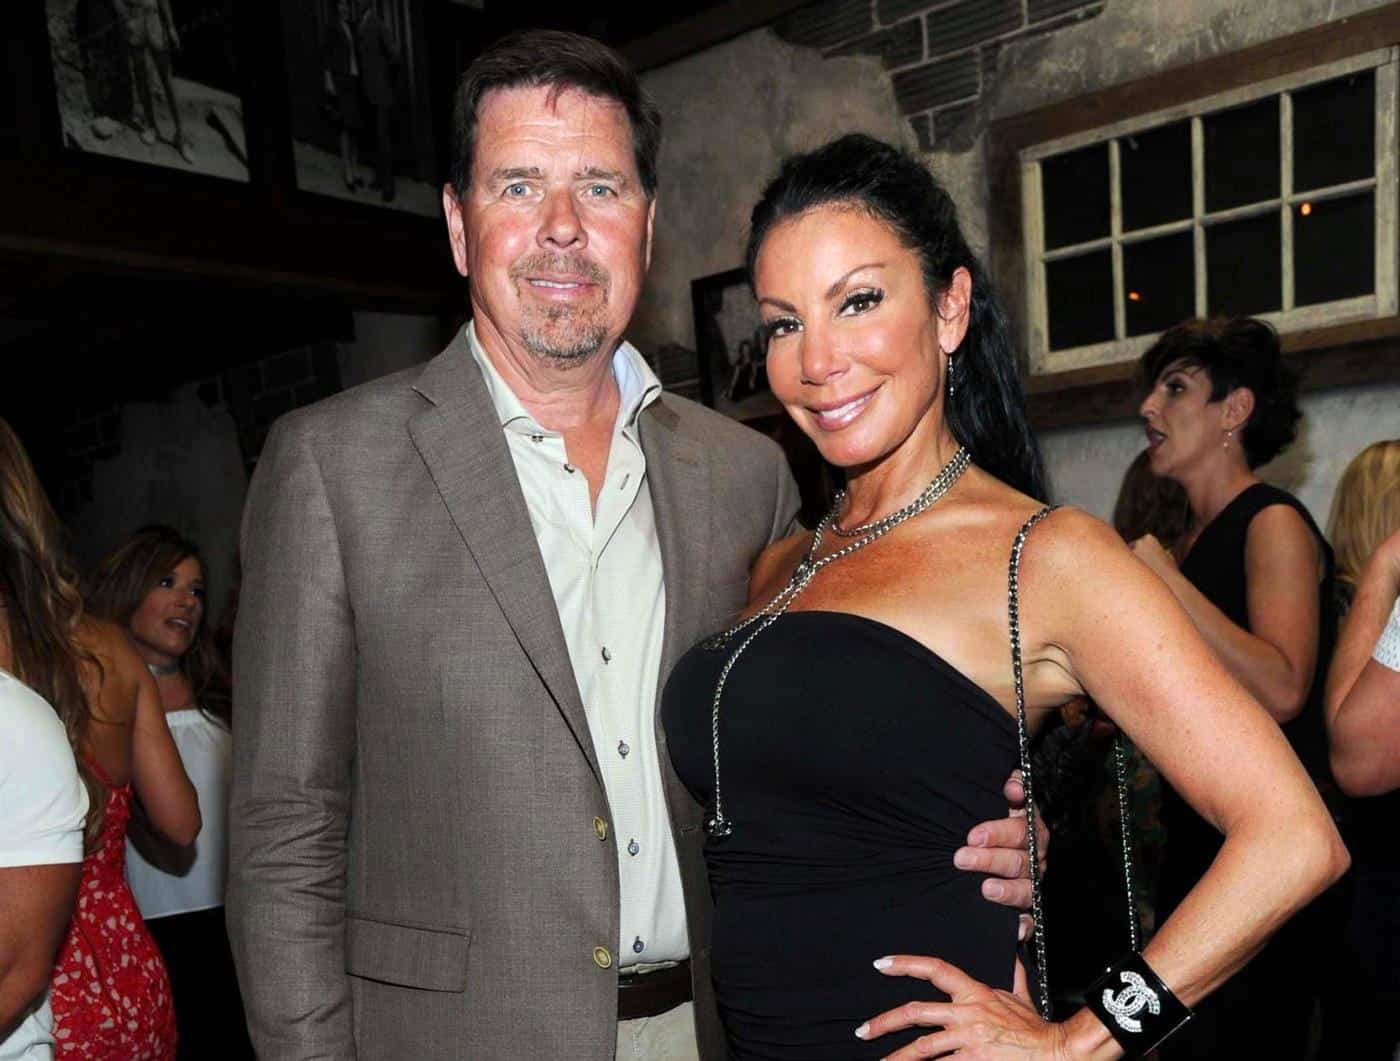 RHONJ's Danielle Staub Tries to Block Home Sale